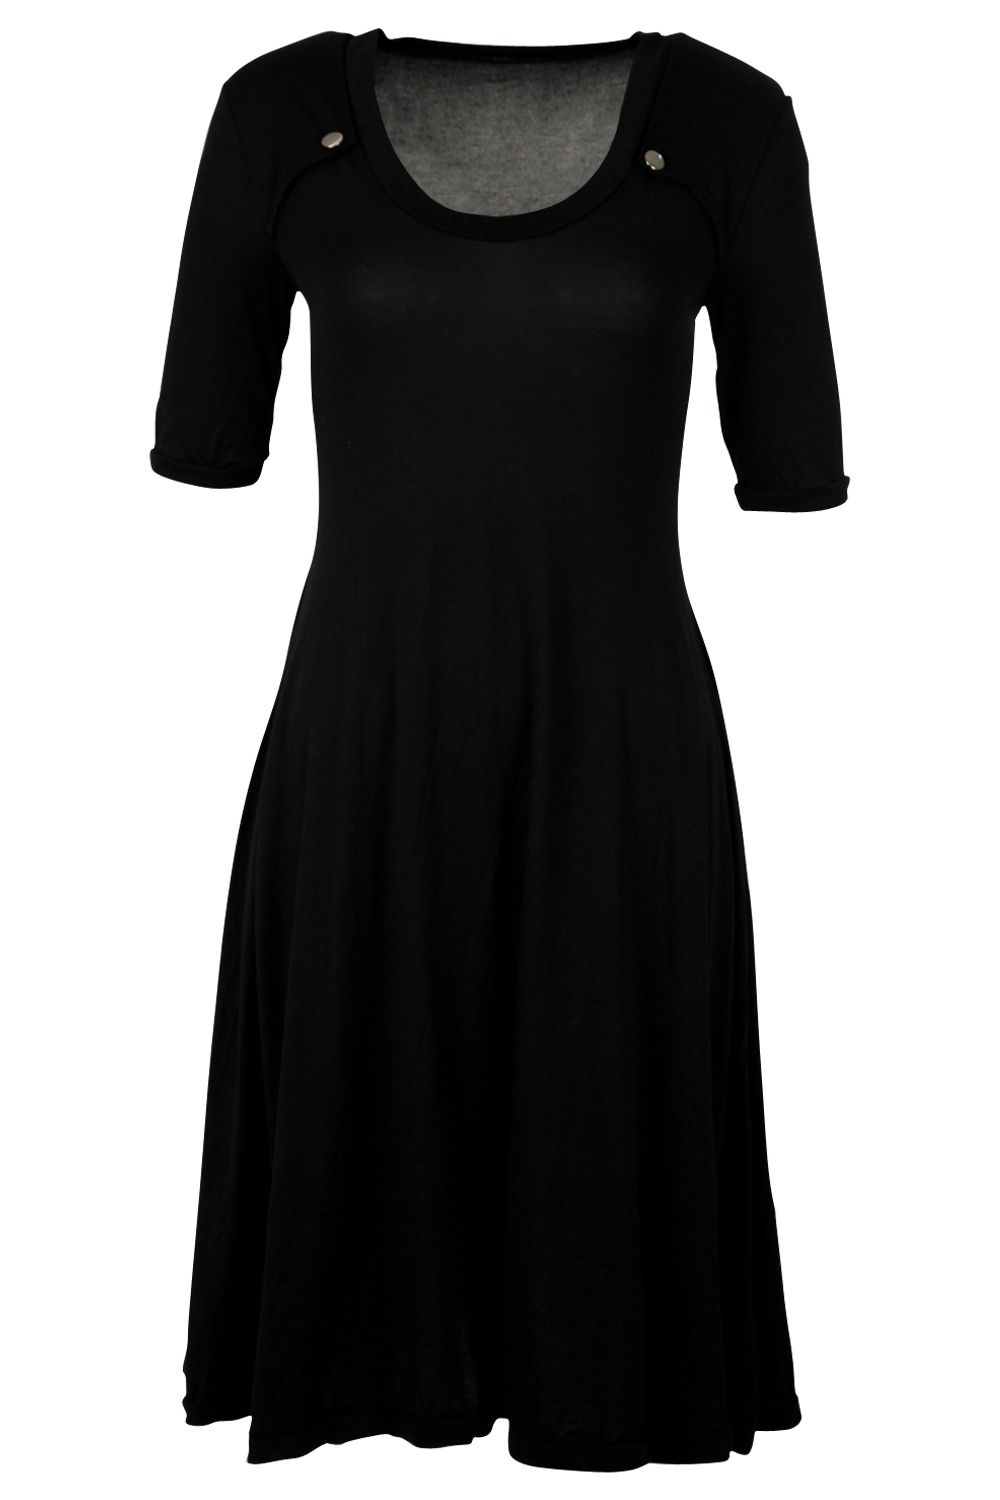 Mesop clothing online blake short sleeve dress womens knee length